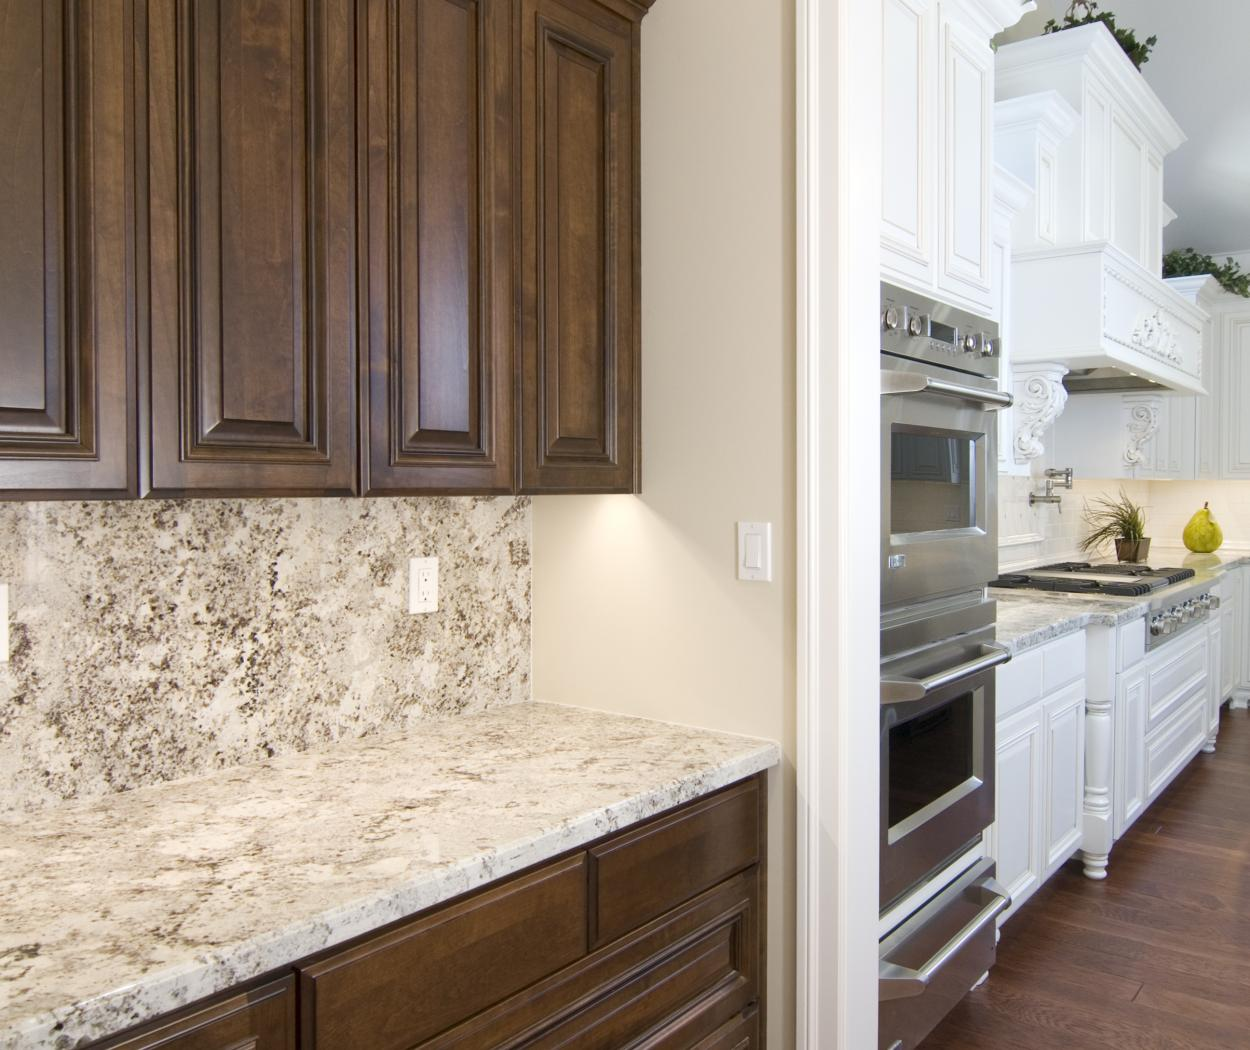 Traditional Chocolate Stained Butler's Pantry with a Beautiful Marble Countertop